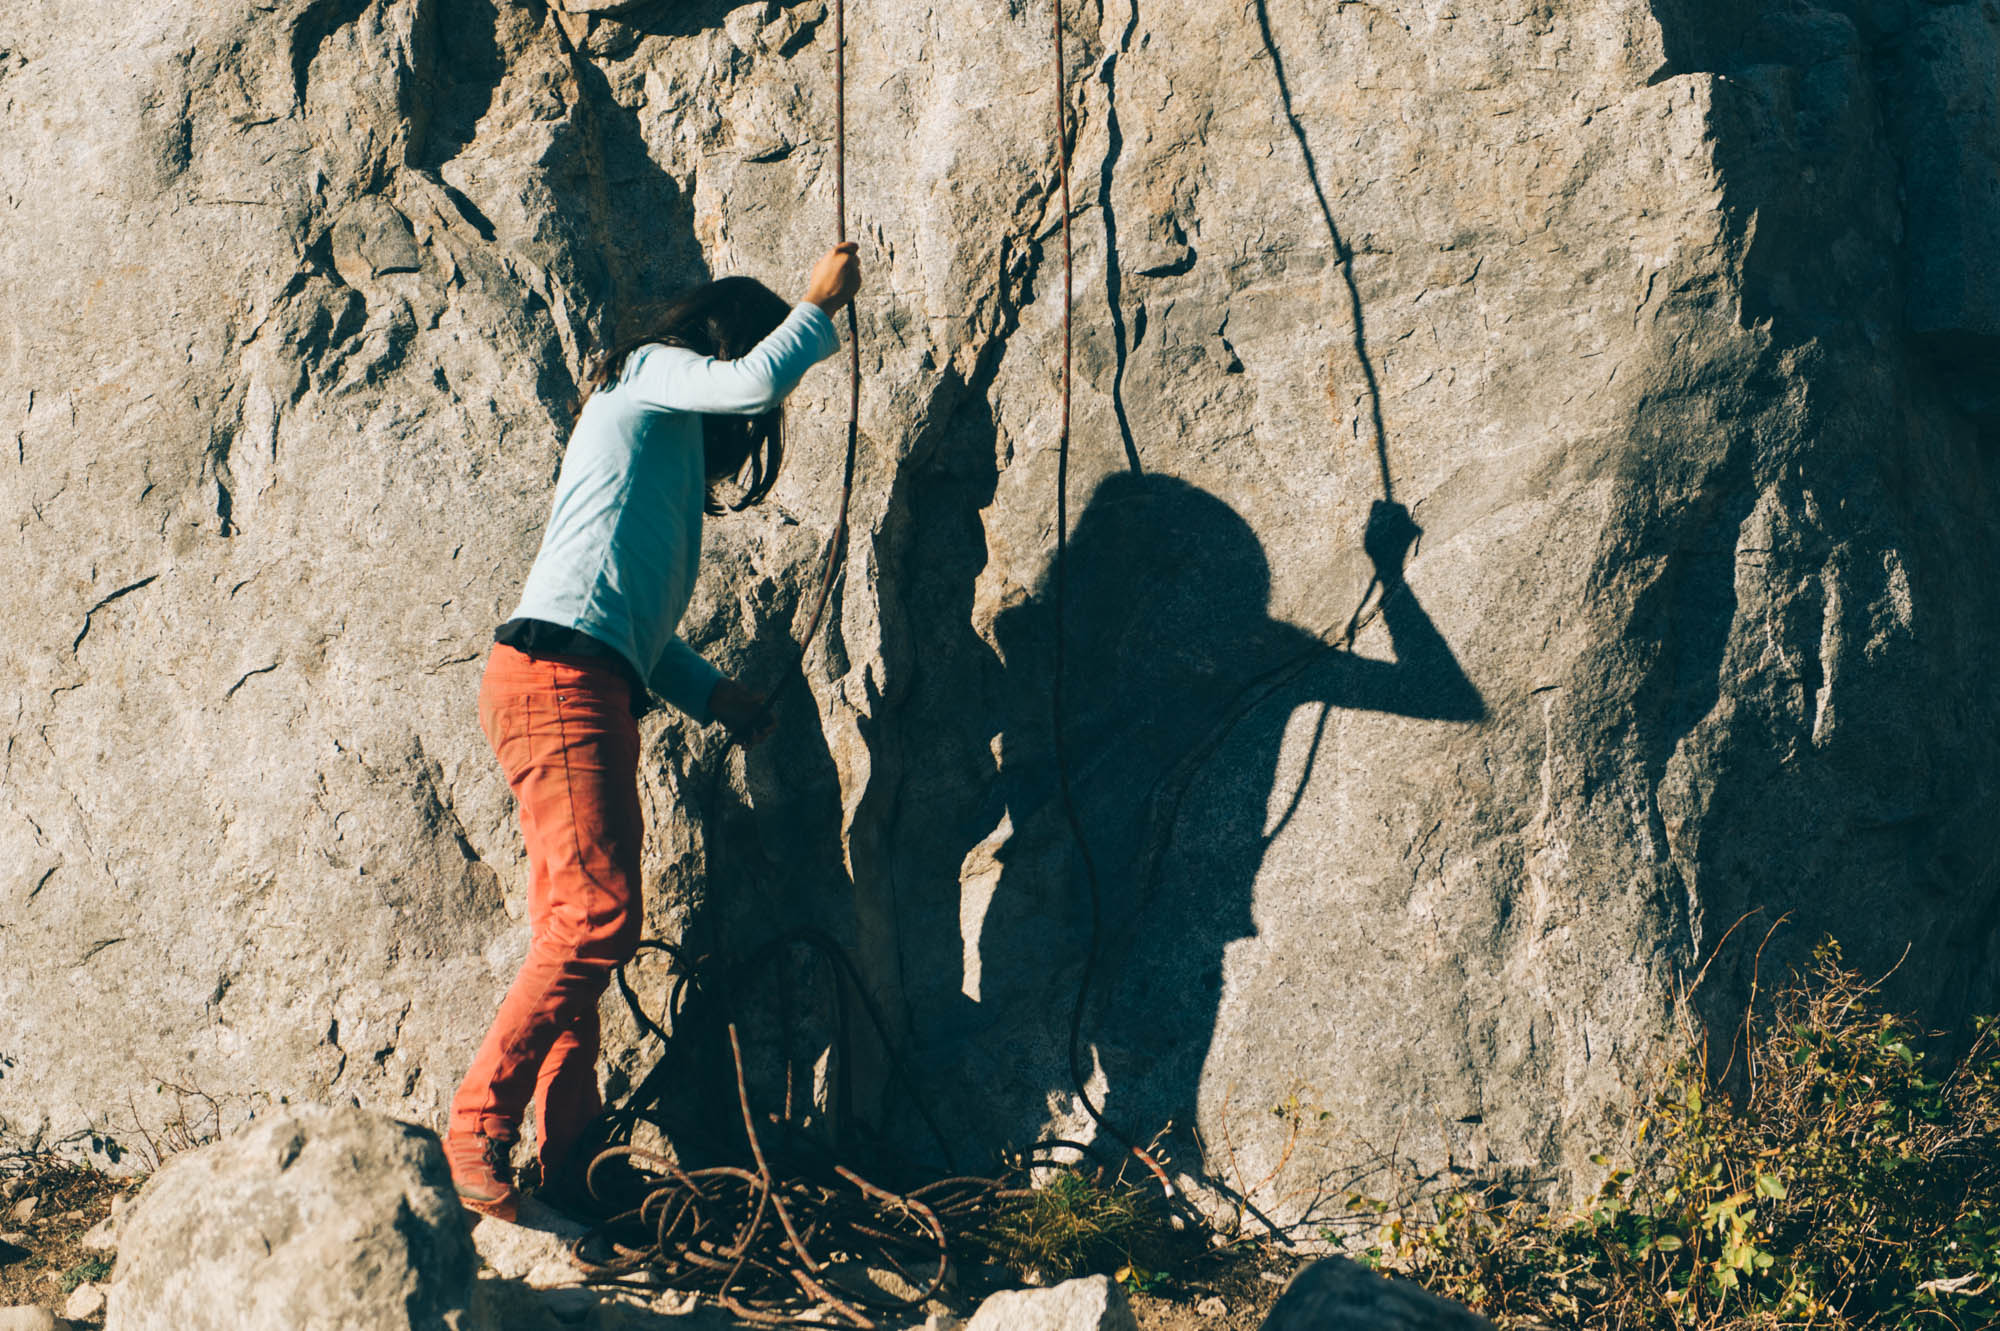 I love how her shadow seems to be angry... Her love-hate relationship with rock climbing!